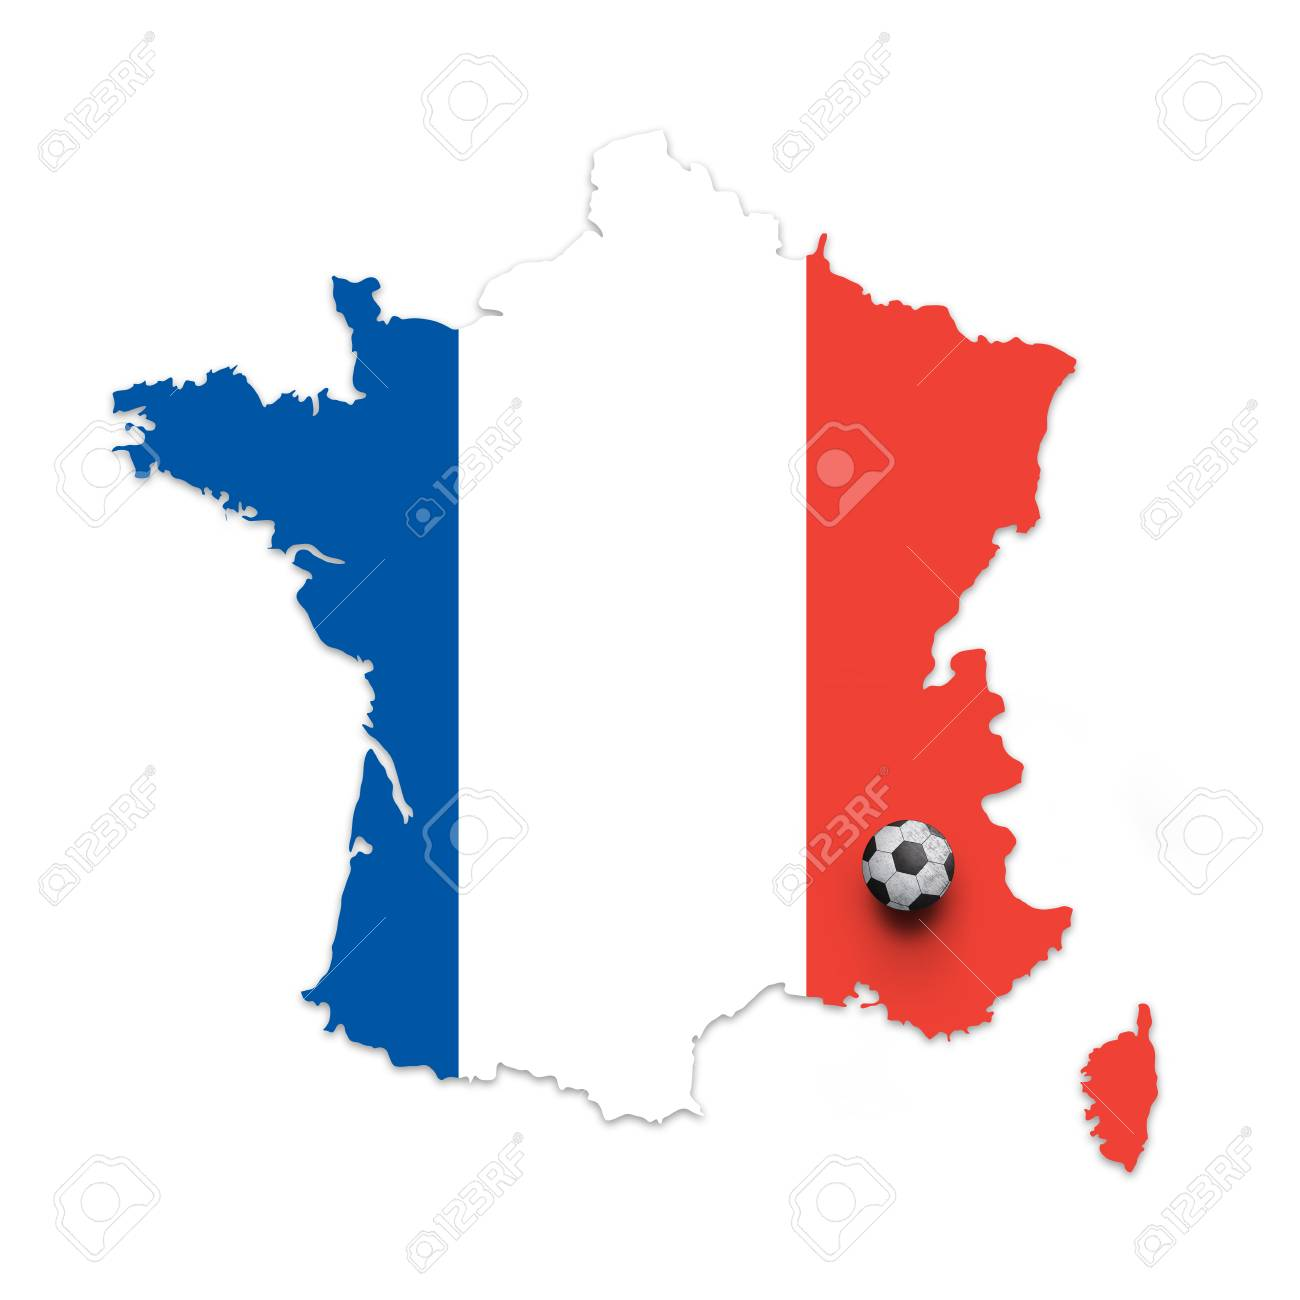 France Map Flag.Previews 123rf Com Images Robsonphoto Robsonphoto1